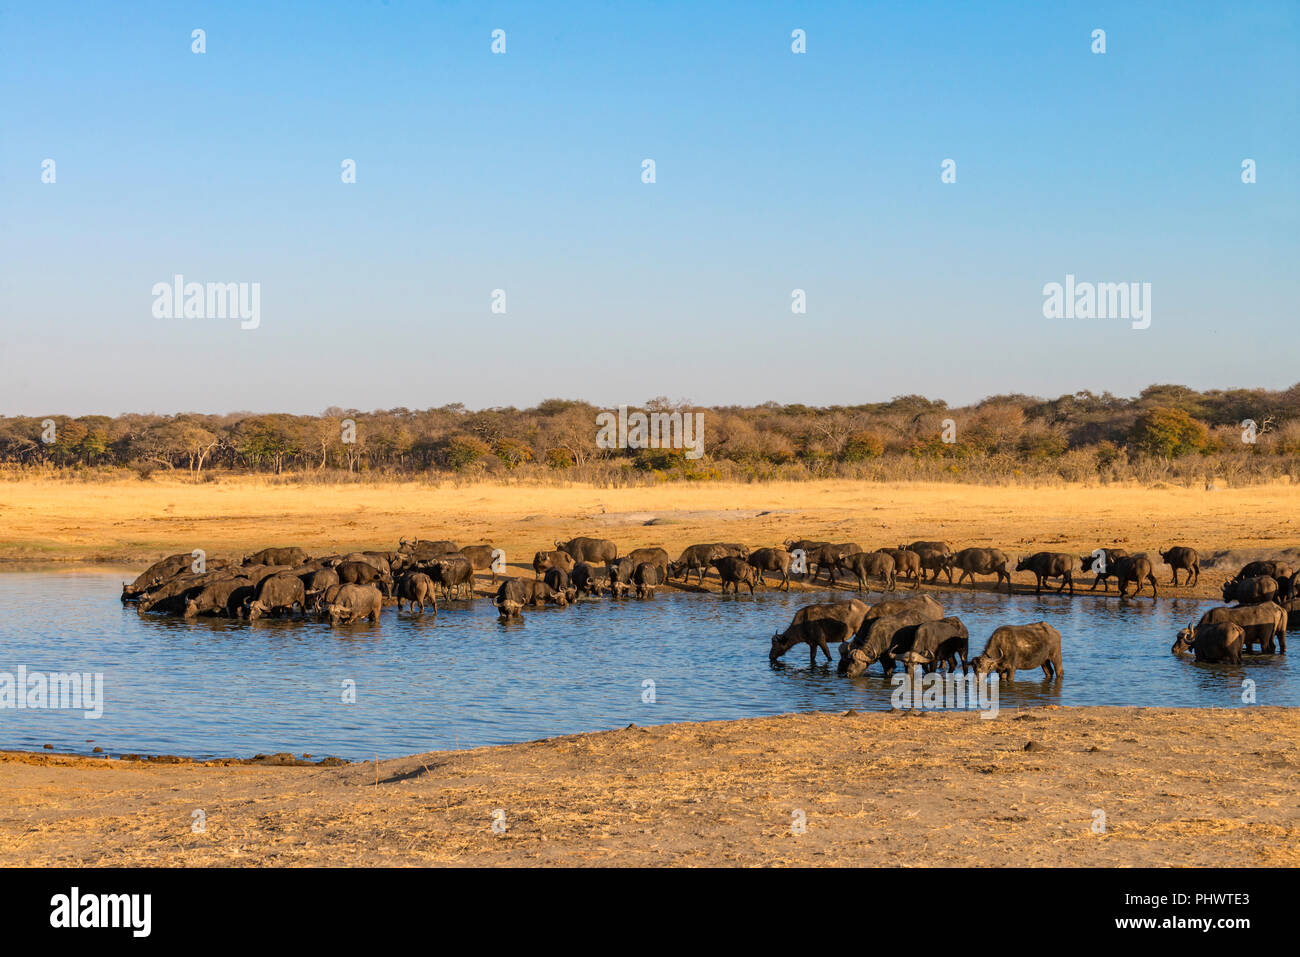 A large herd of Cape Buffalo Syncerus caffer seen in Zimbabwe's Hwange National Park. - Stock Image